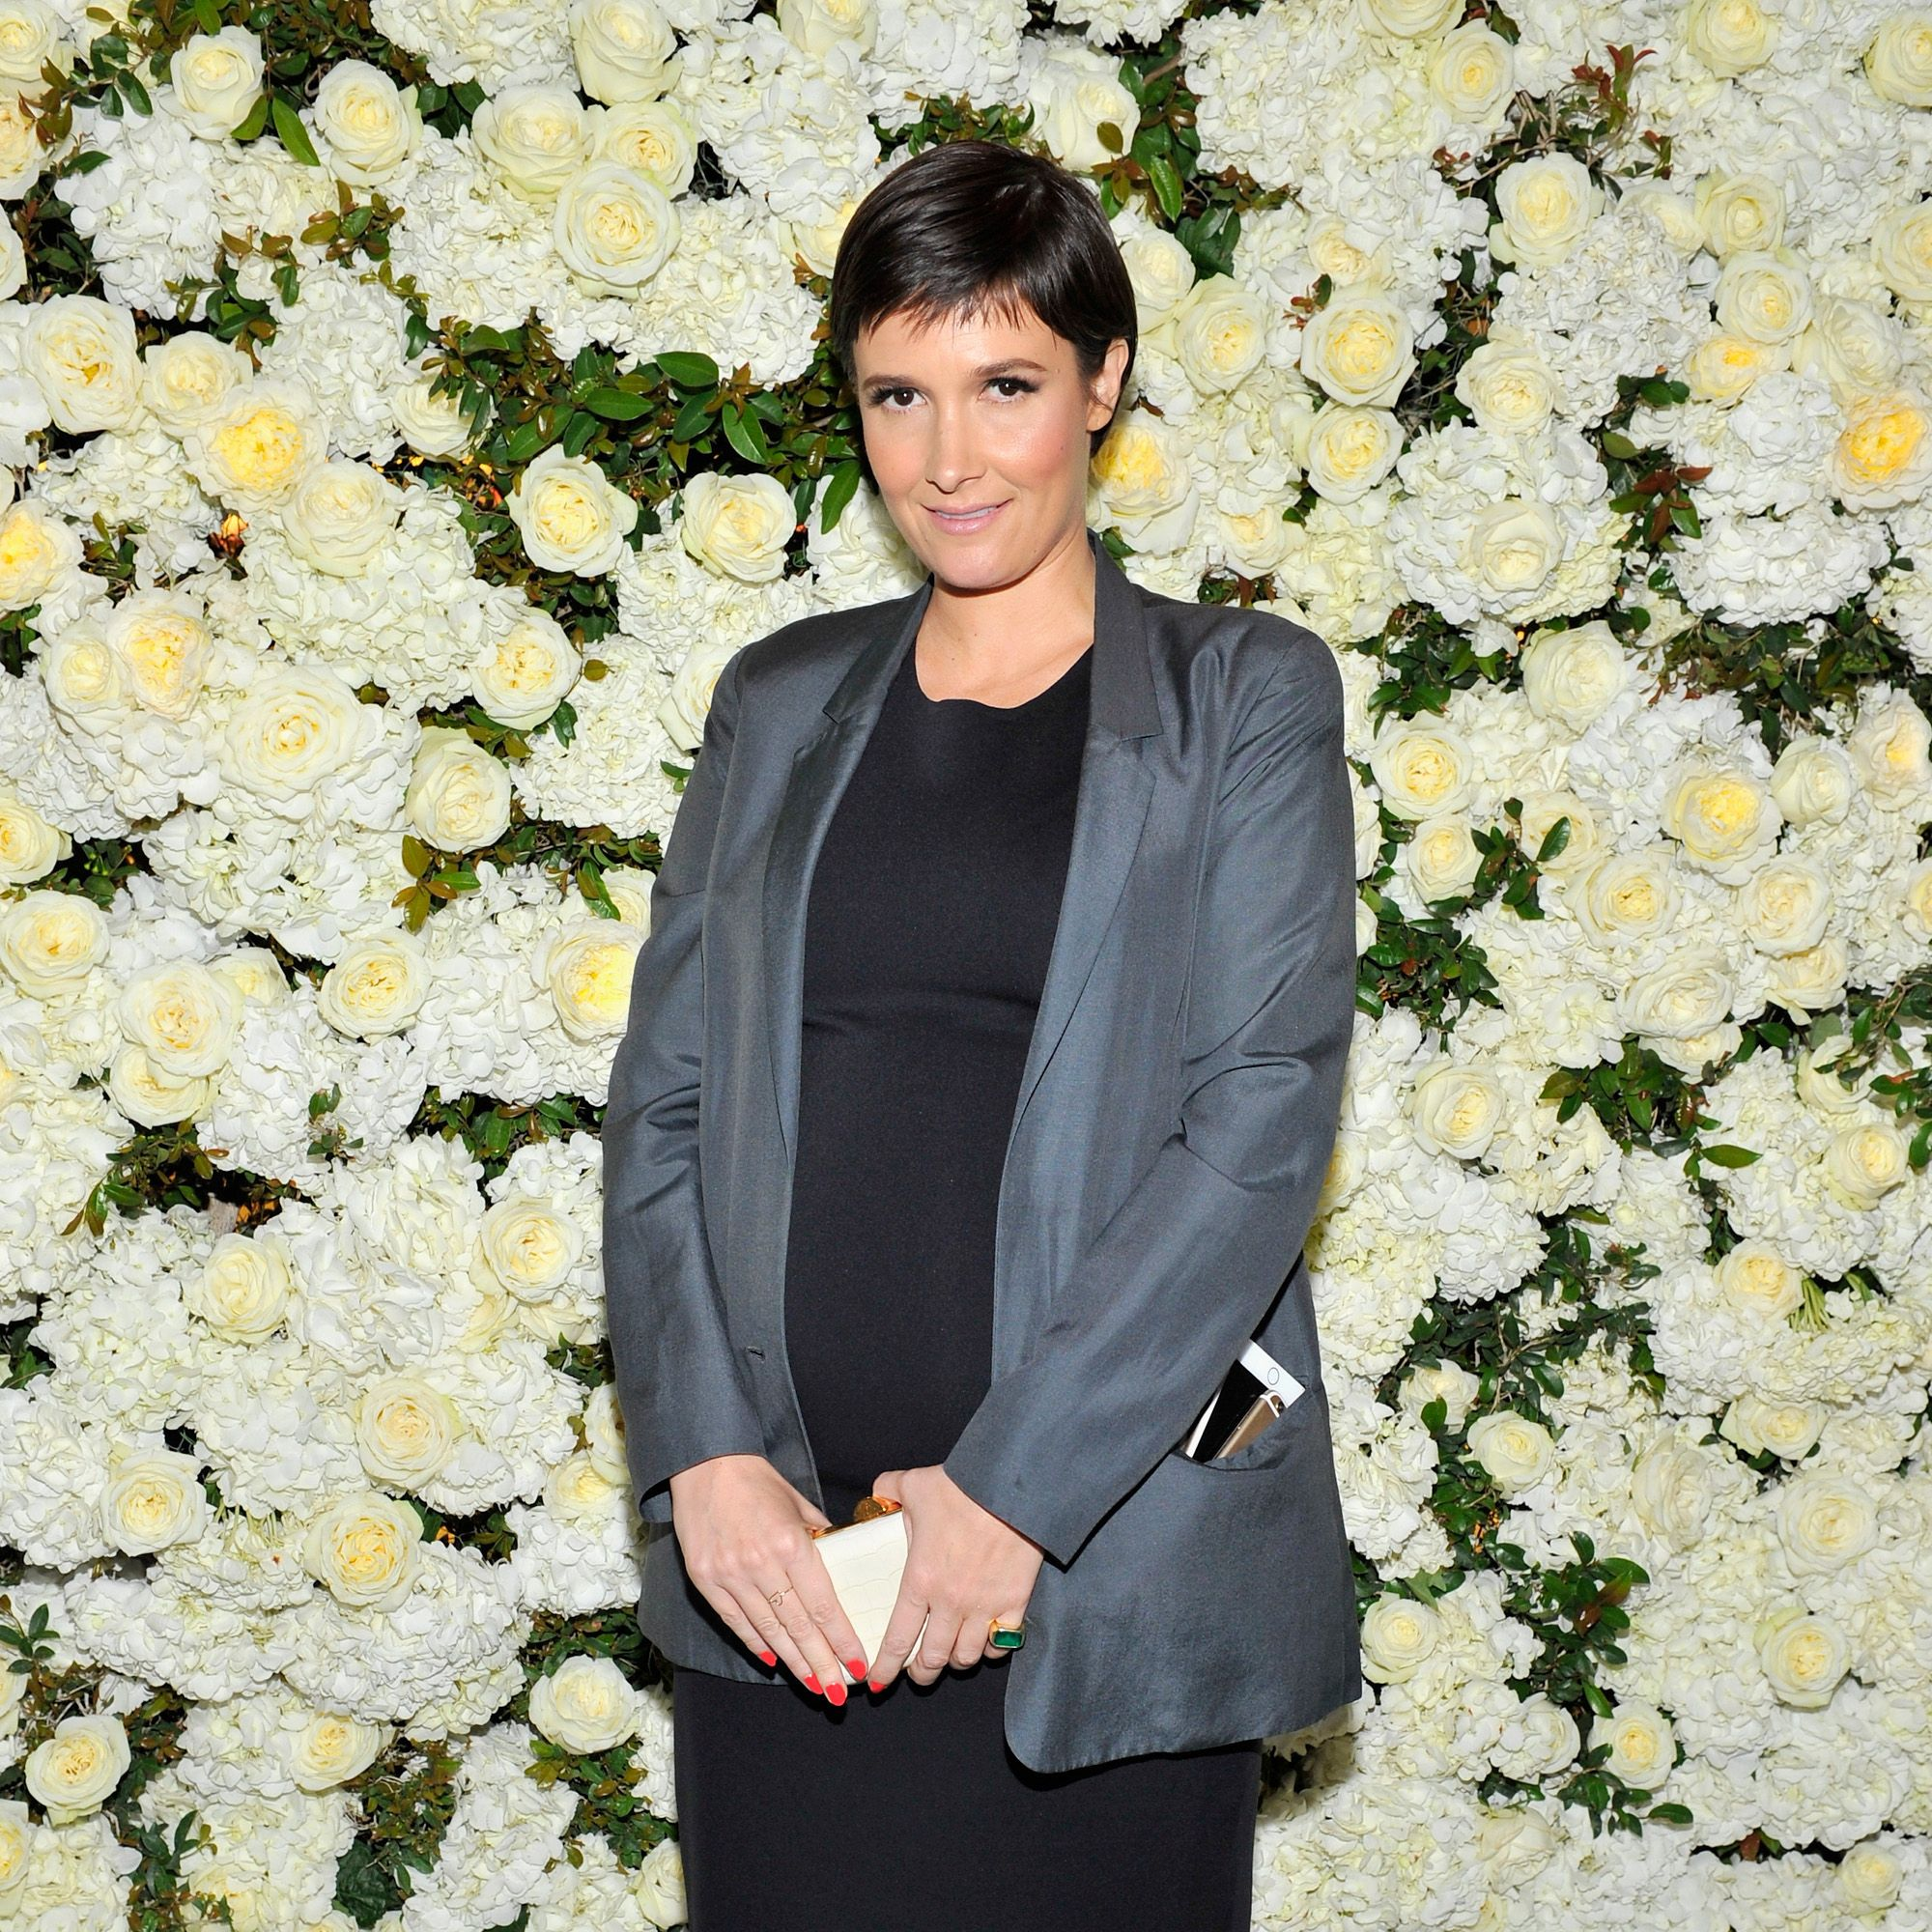 BEVERLY HILLS, CA - APRIL 14:  Cassandra Grey attends David And Victoria Beckham, Along With Barneys New York, Host A Dinner To Celebrate The Victoria Beckham Collection at Fred's at Barneys on April 14, 2015 in Beverly Hills, California.  (Photo by Donato Sardella/Getty Images for Barneys New York)